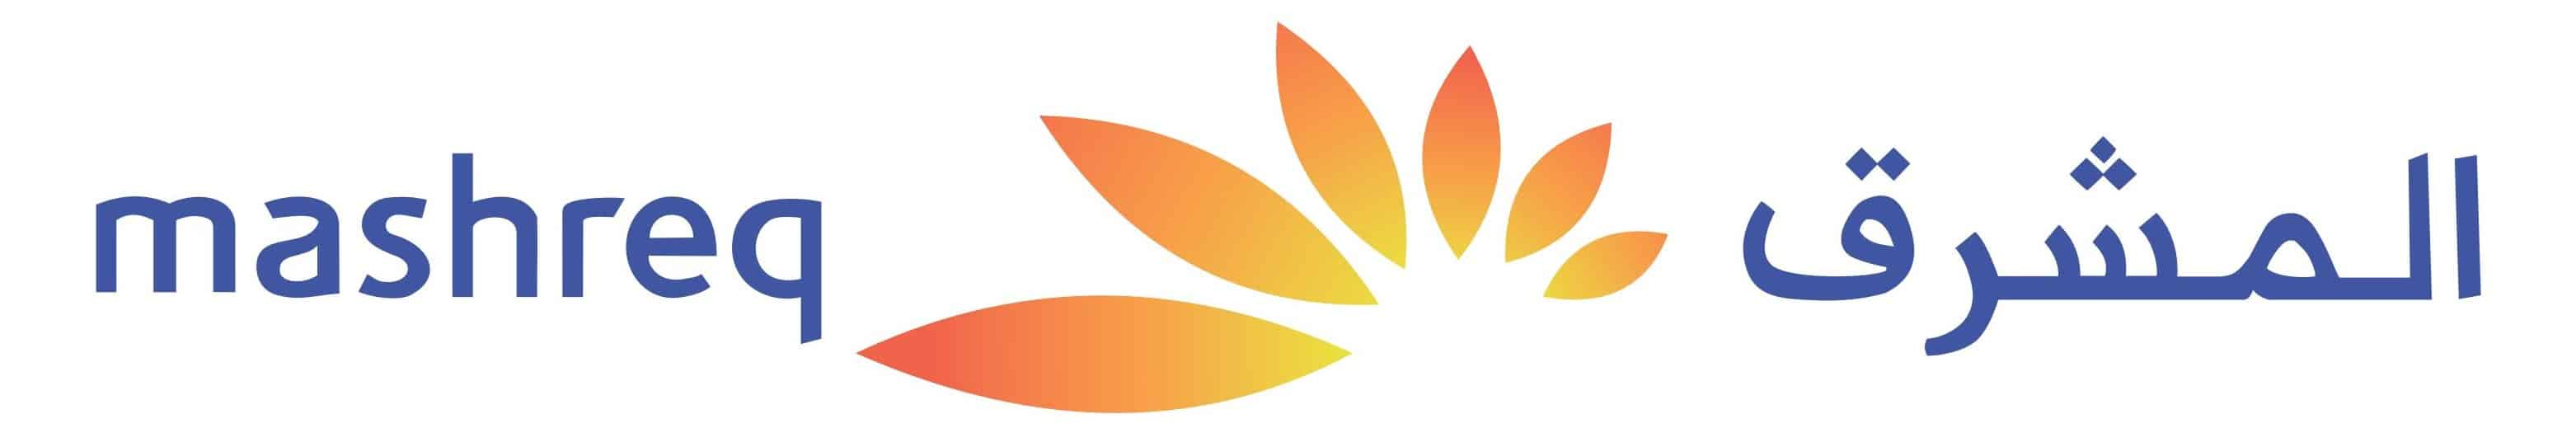 mashreq bank logo